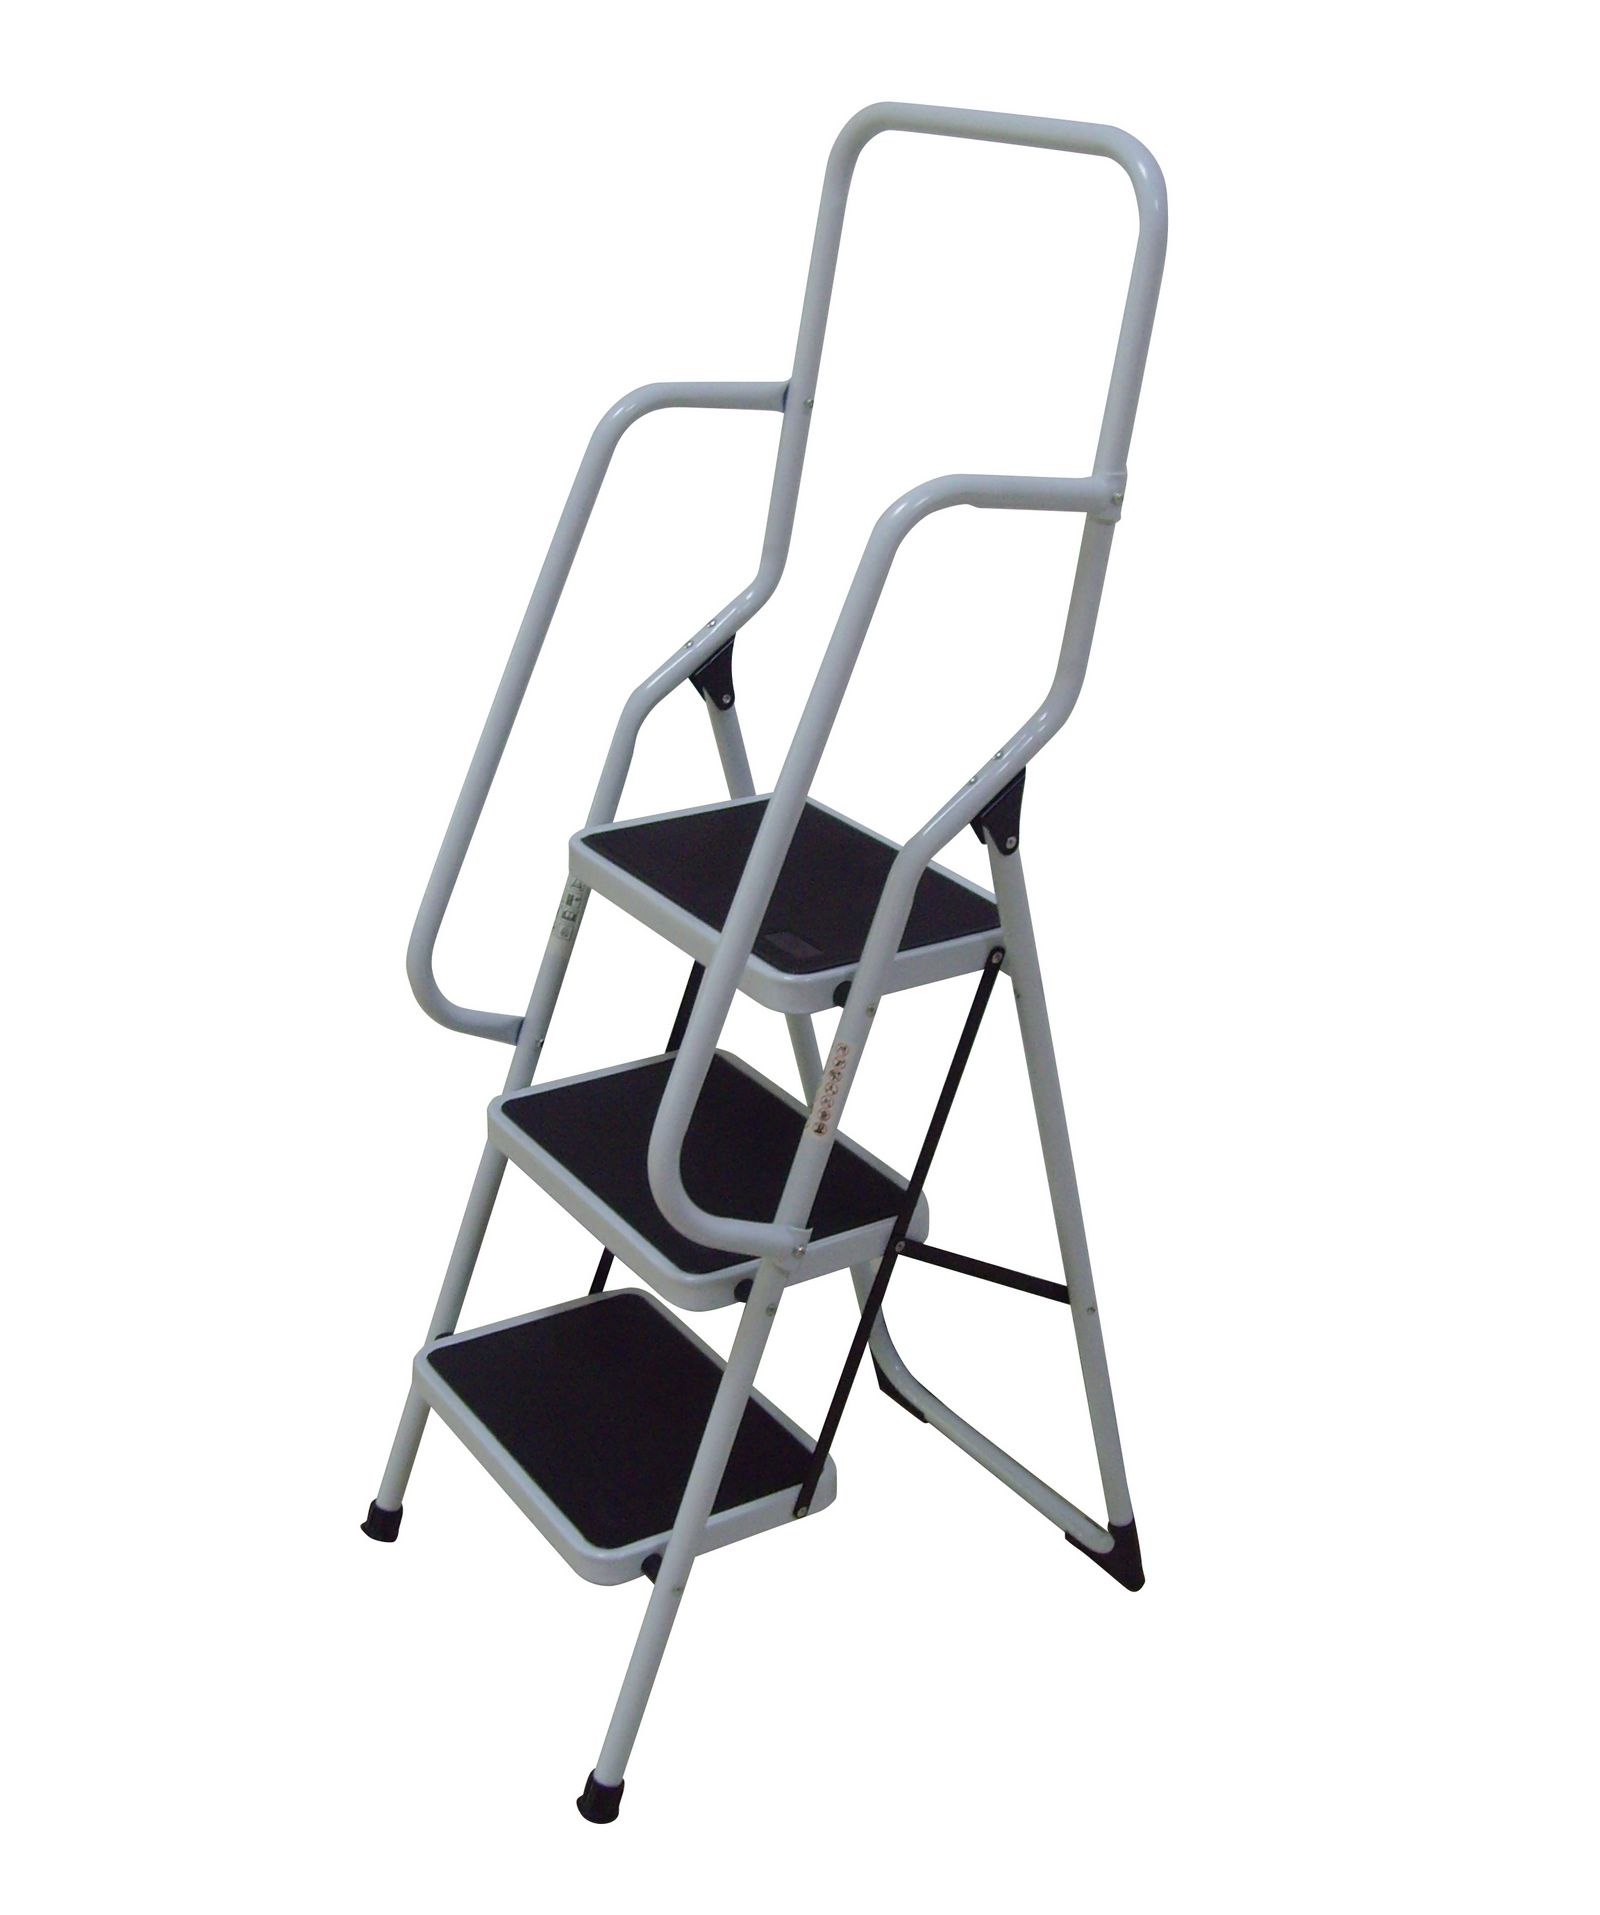 Foldable Non Slip 3 Step Steel Ladder Tread Stepladder